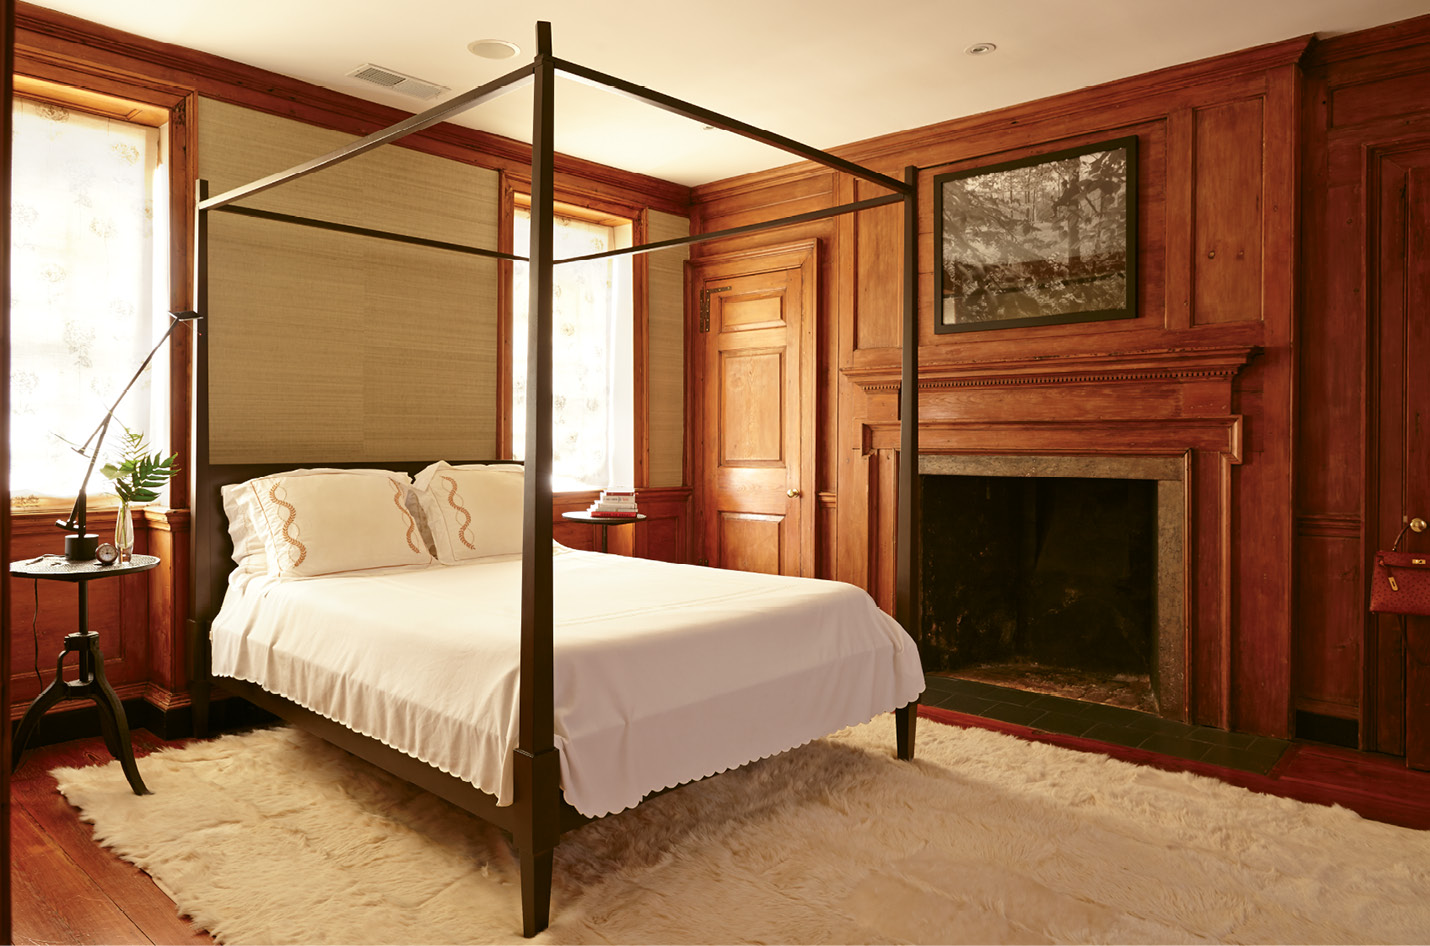 Original cypress paneling lends a dignified air to the master bedroom.